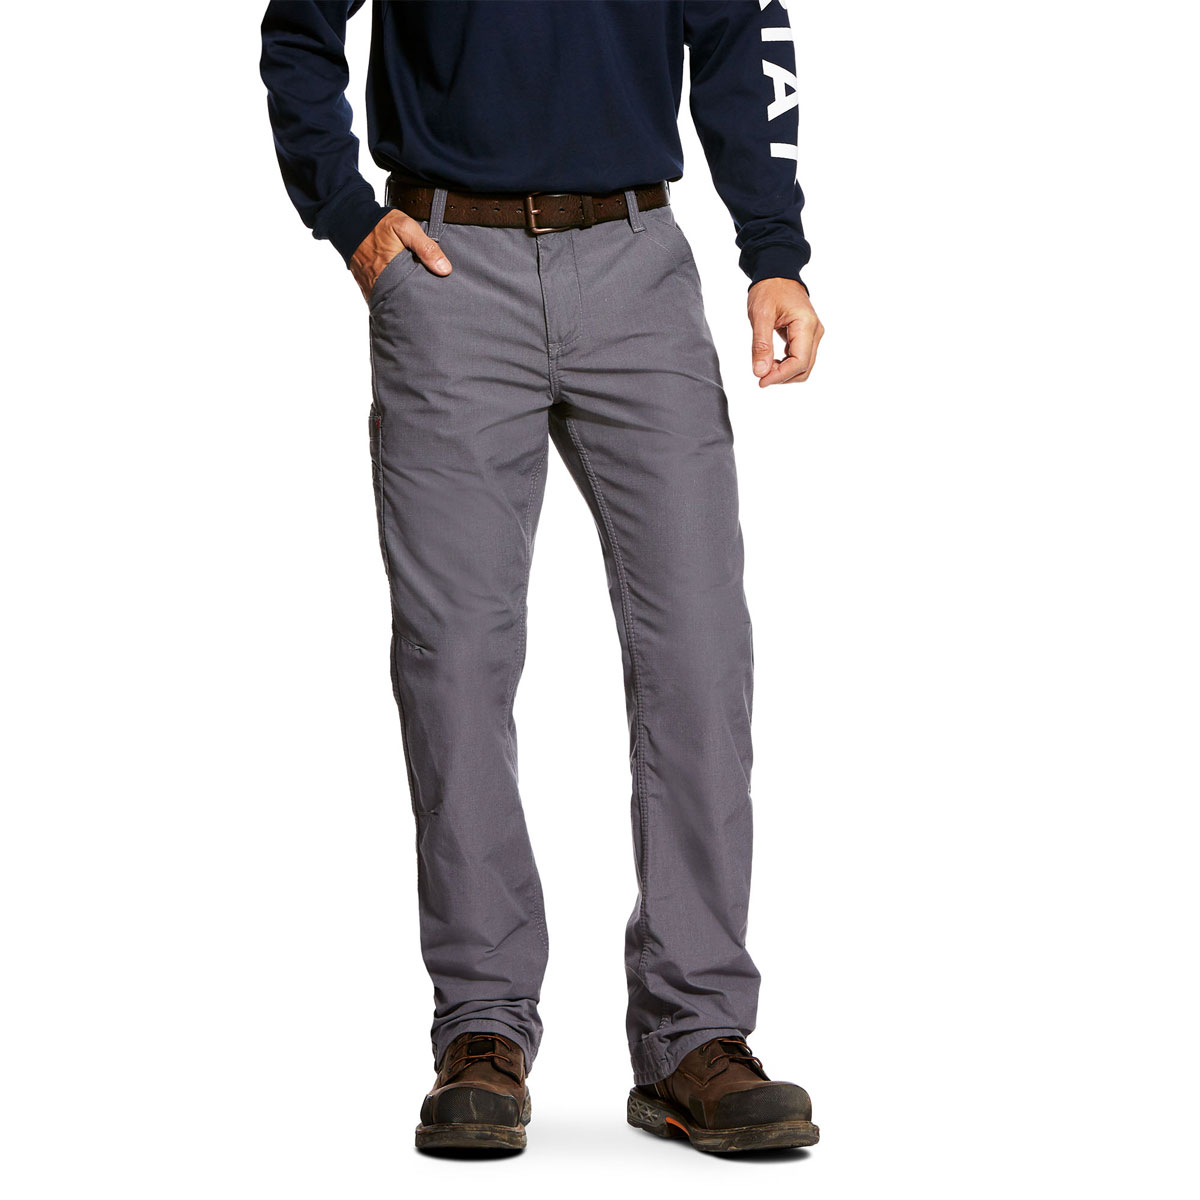 Ariat FR M4 Relaxed DuraLight Ripstop Pant